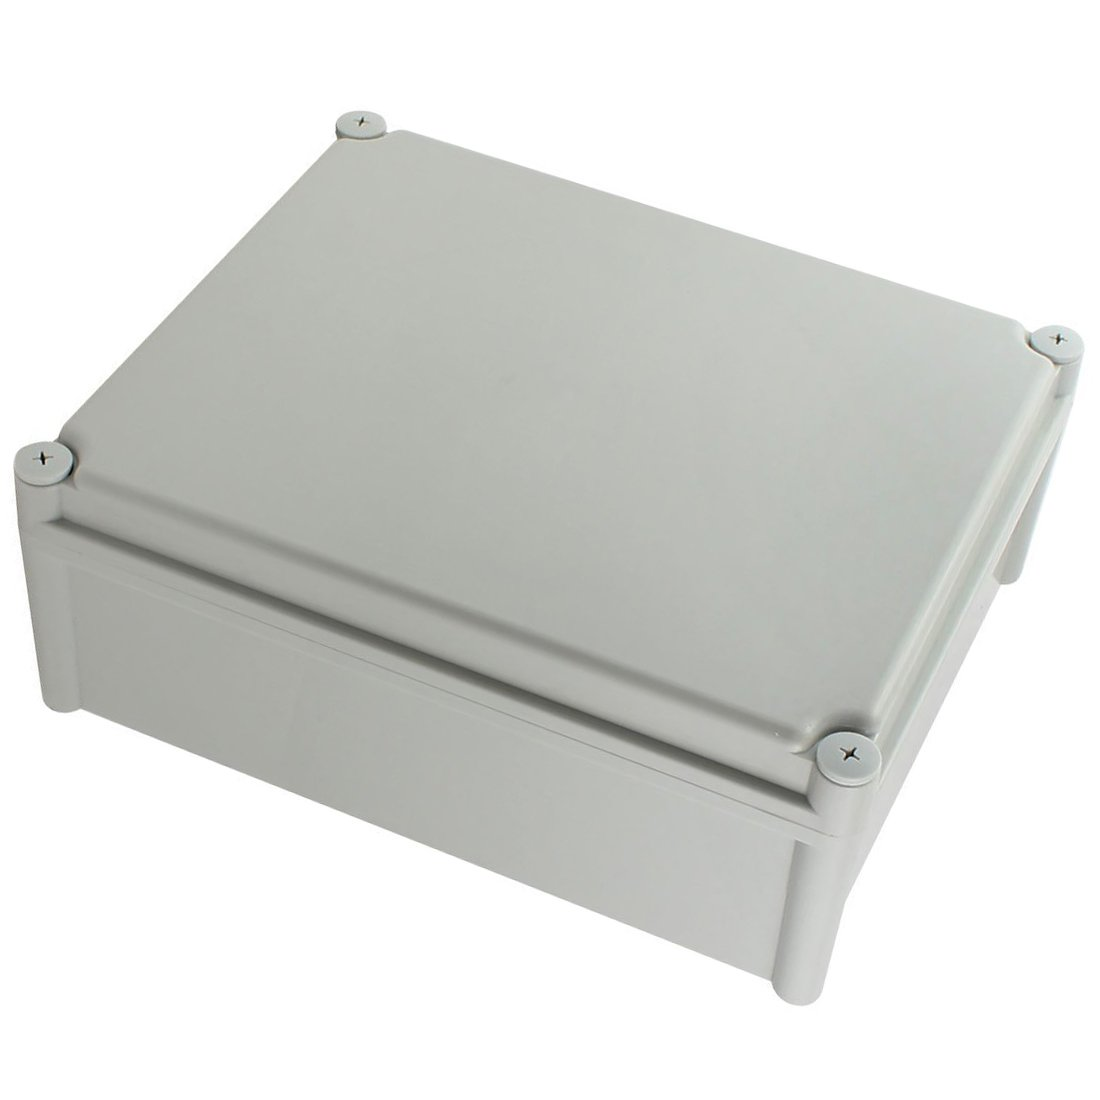 YXQ Junction Box Electrical Project Case IP65 Waterproof ABS DIY Power Outdoor Enclosure Gray (13.4 x 11 x 5.1 inches)